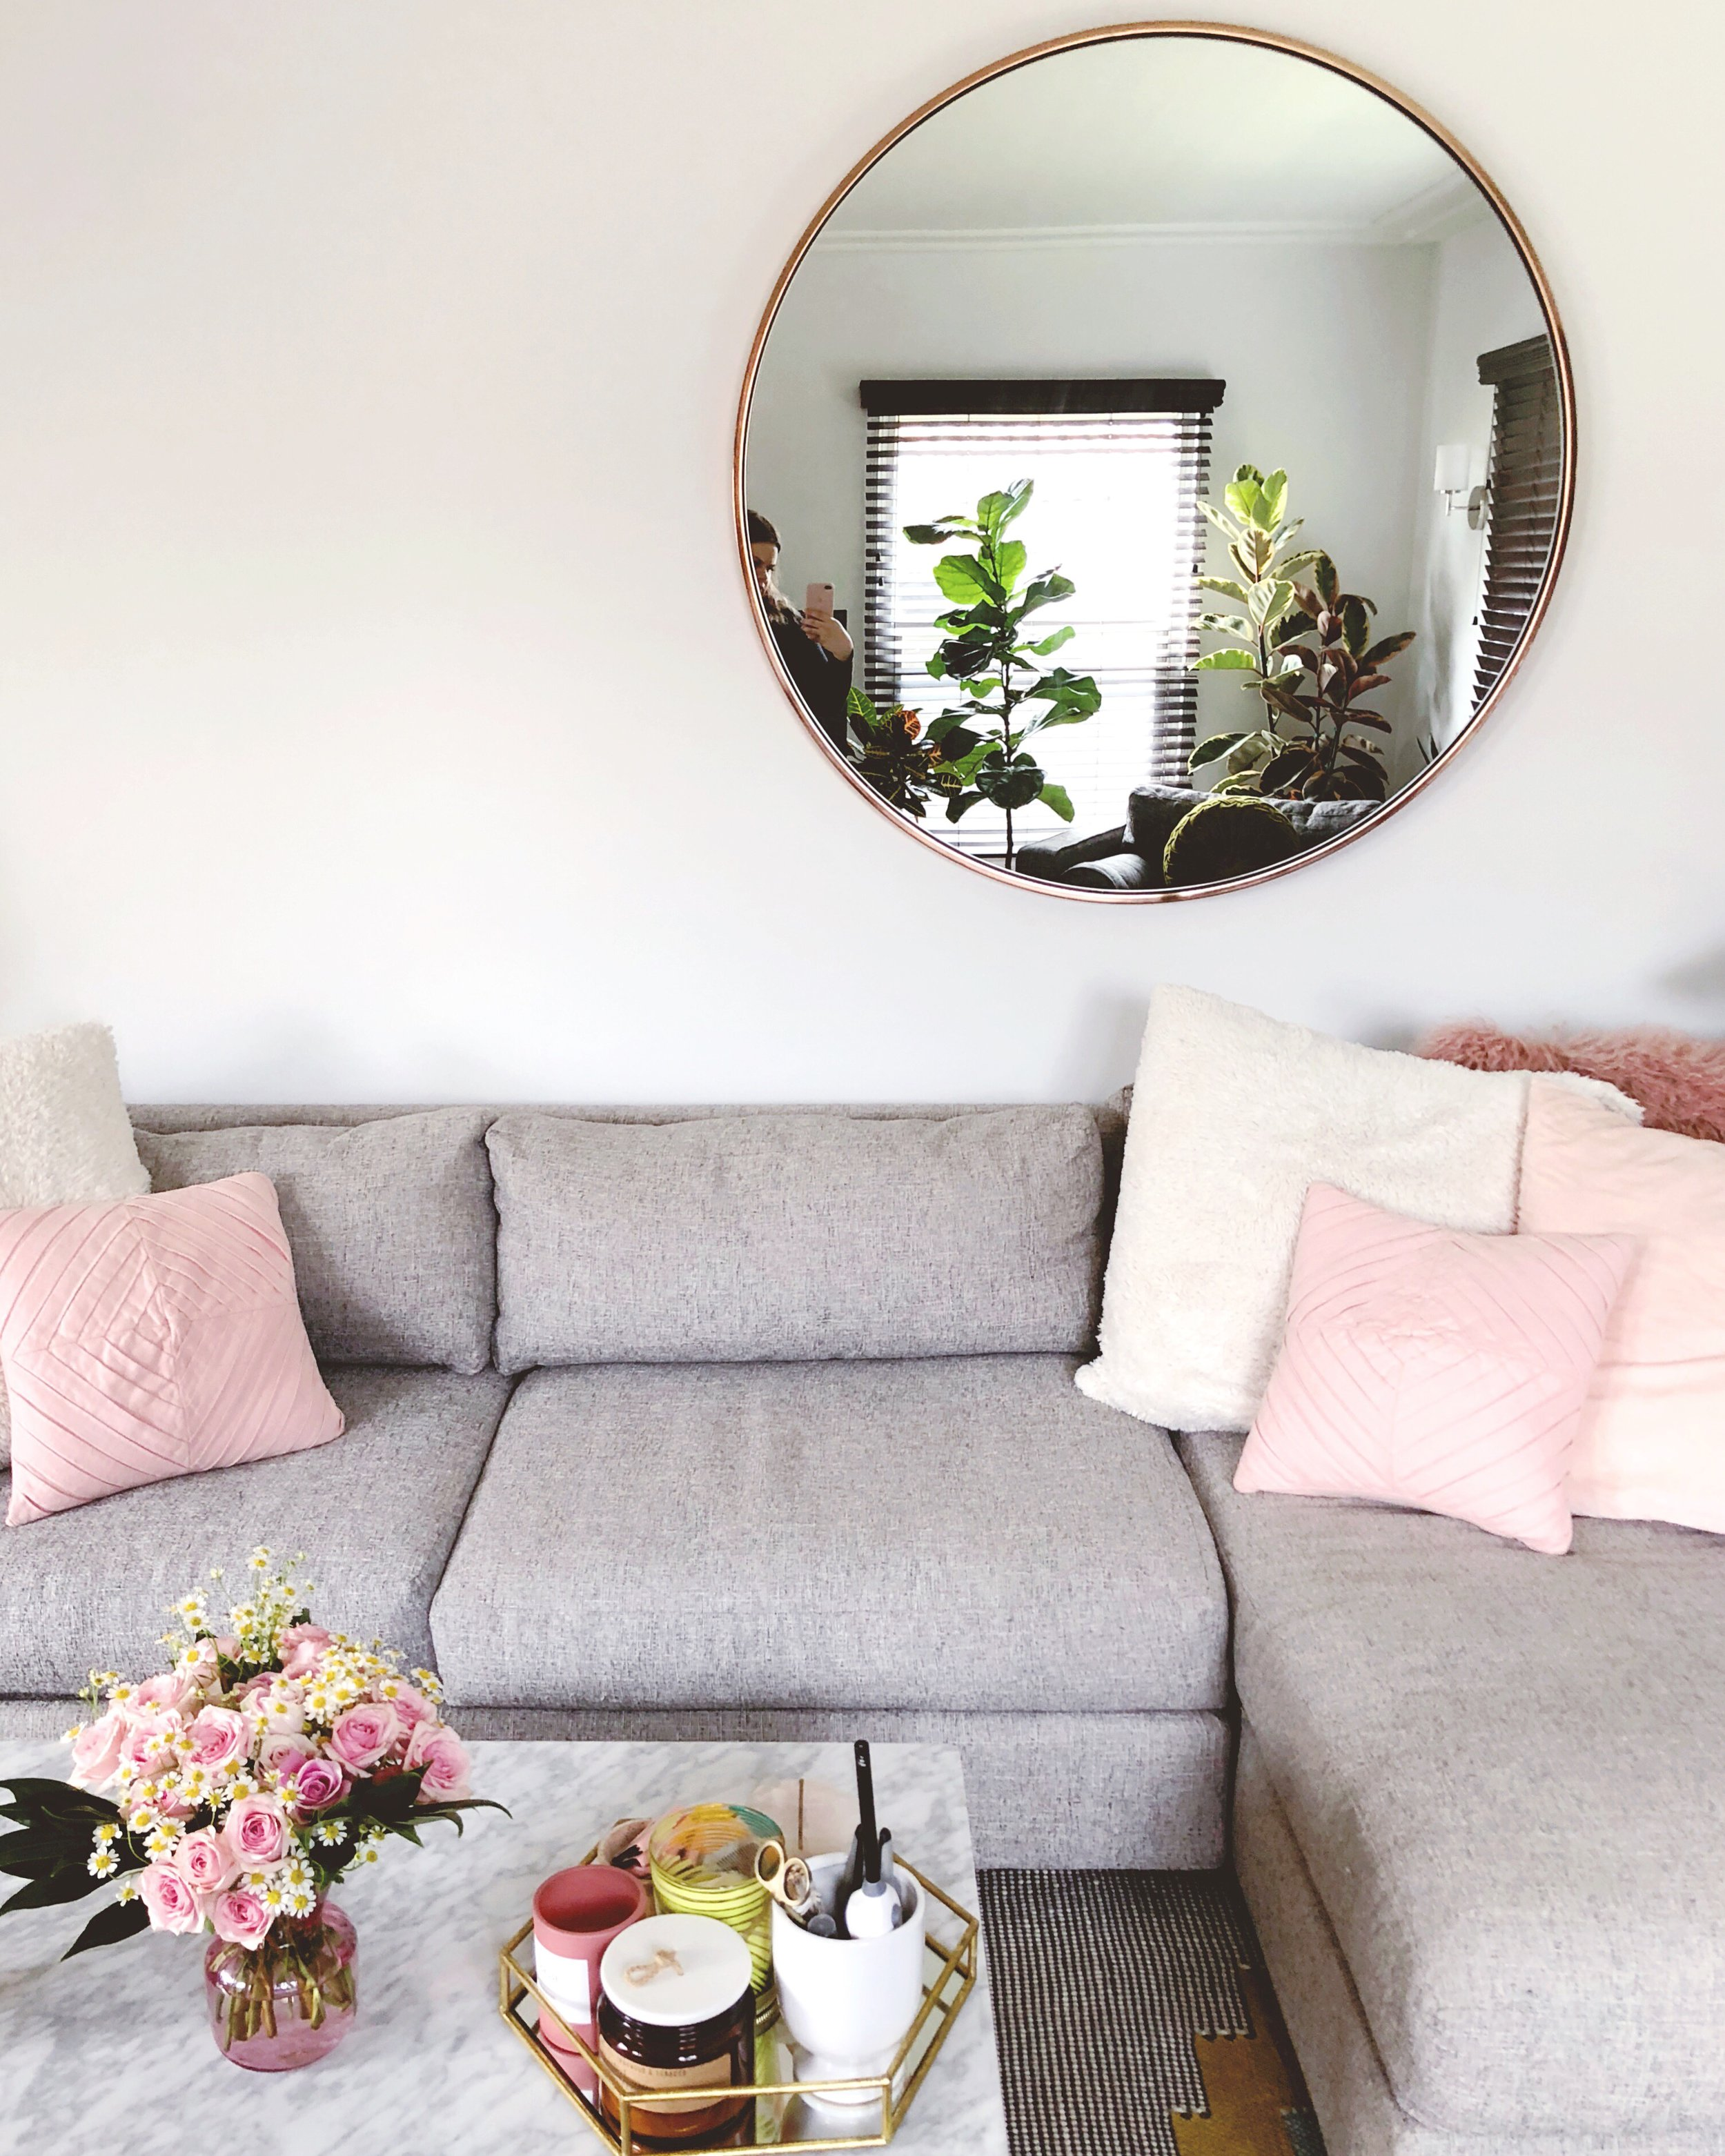 west elm living rooms room furniture ideas tips tour with shopping links reviews ashley hosmer couch